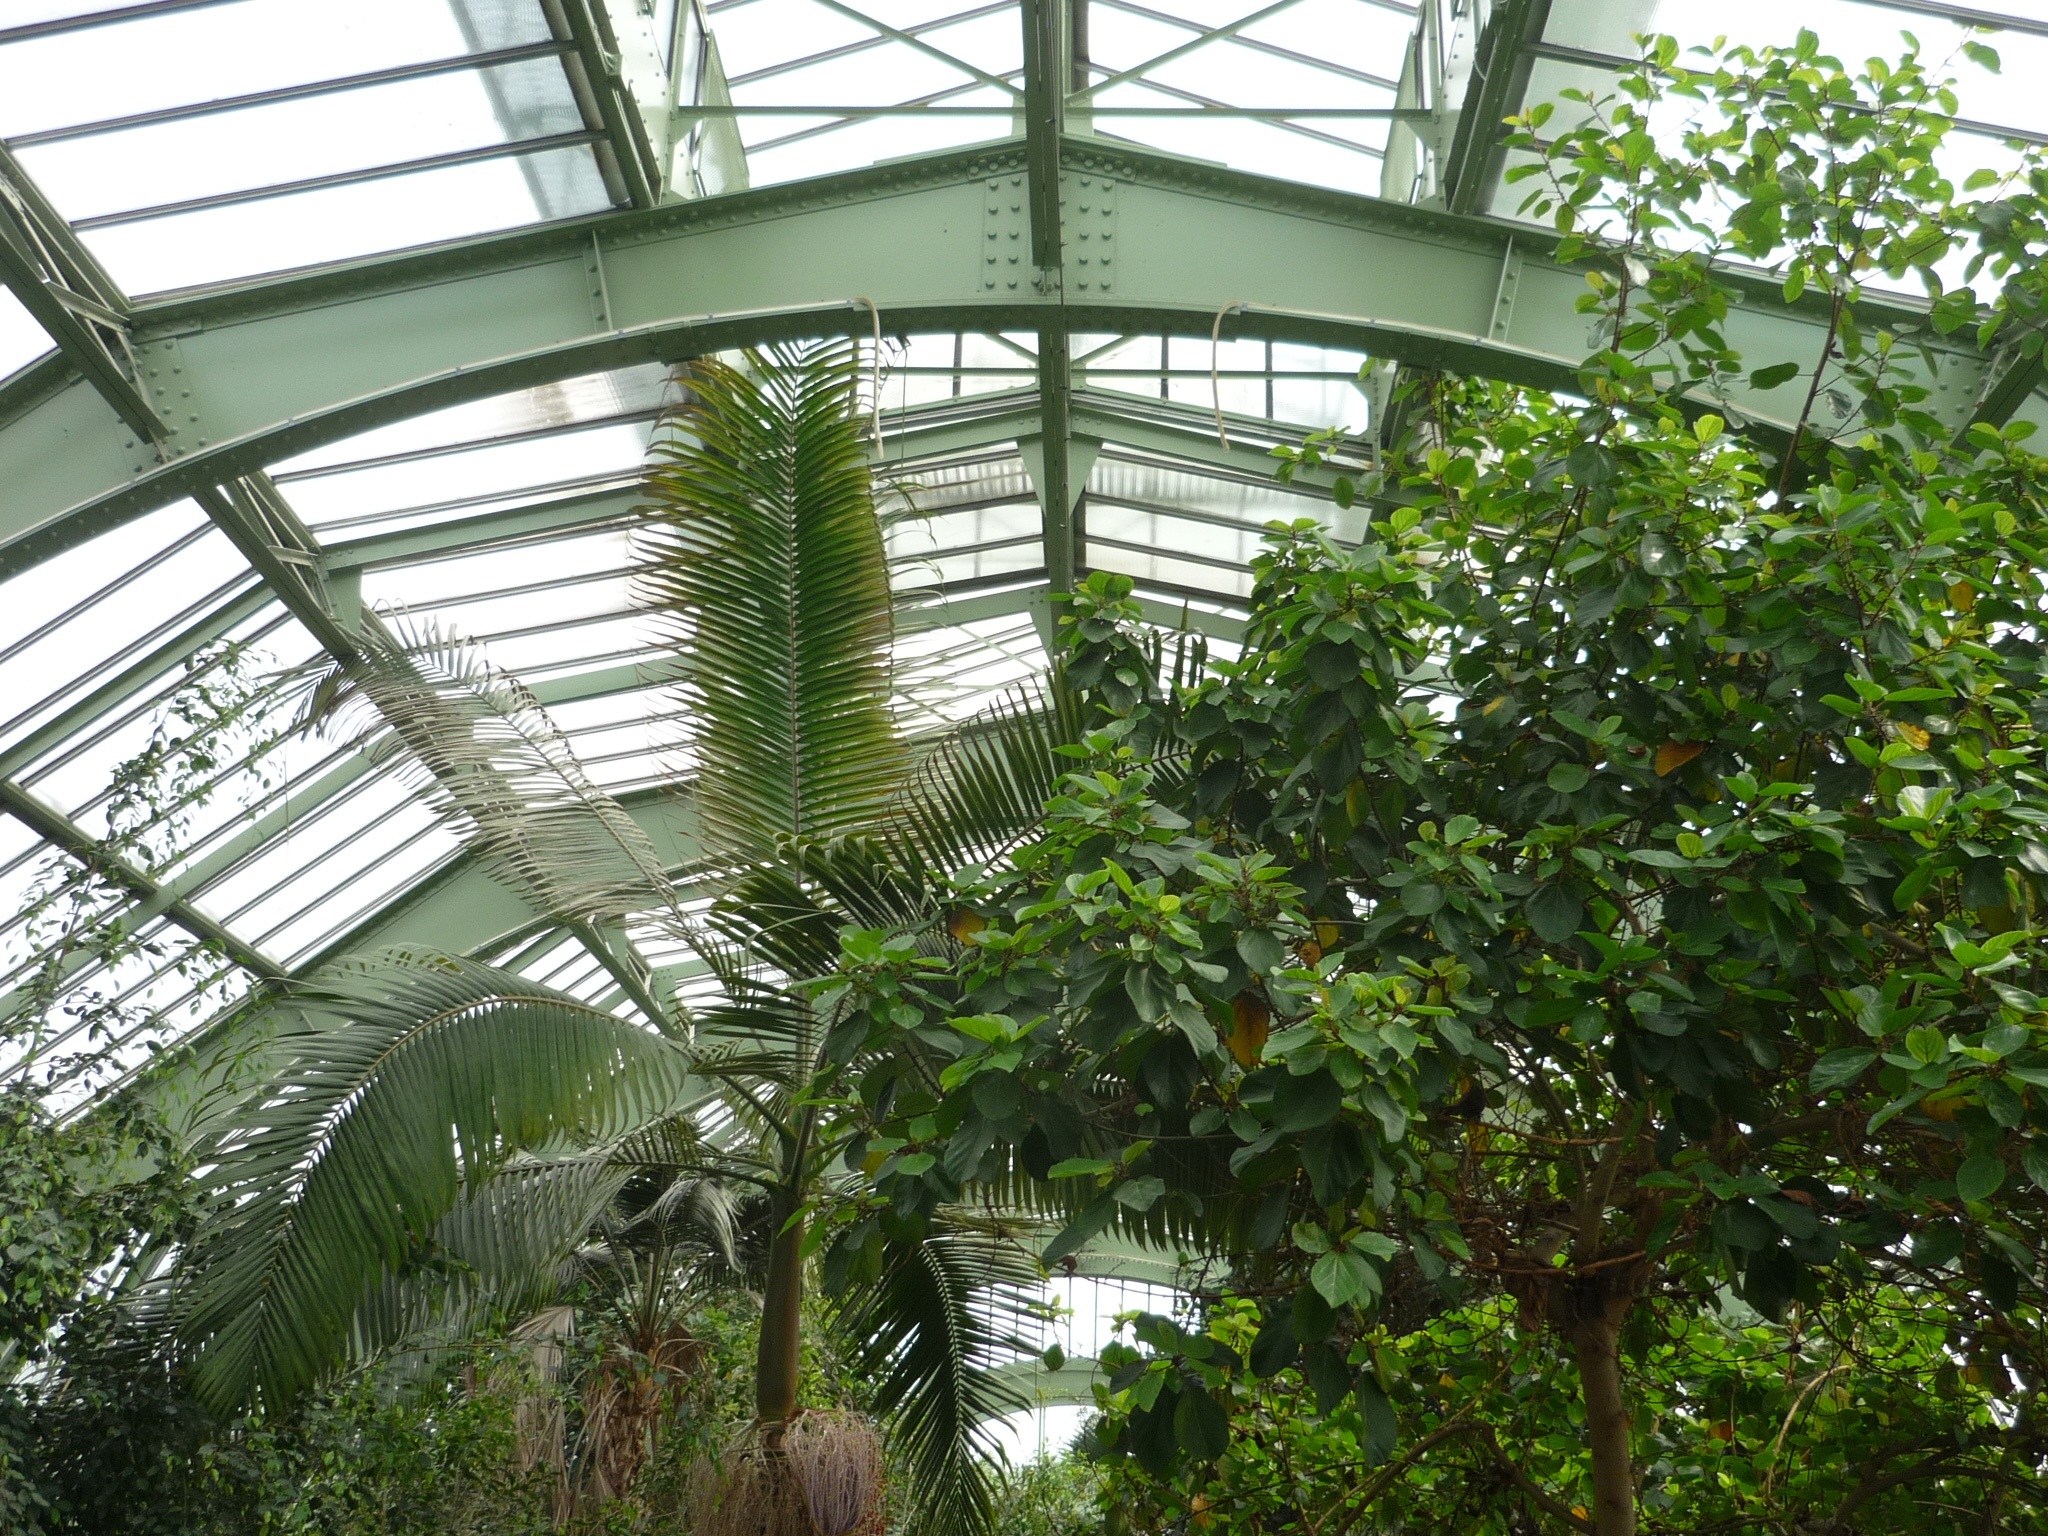 File jardin des plantes paris serre tropicale5 jpg for Paris jardin plantes